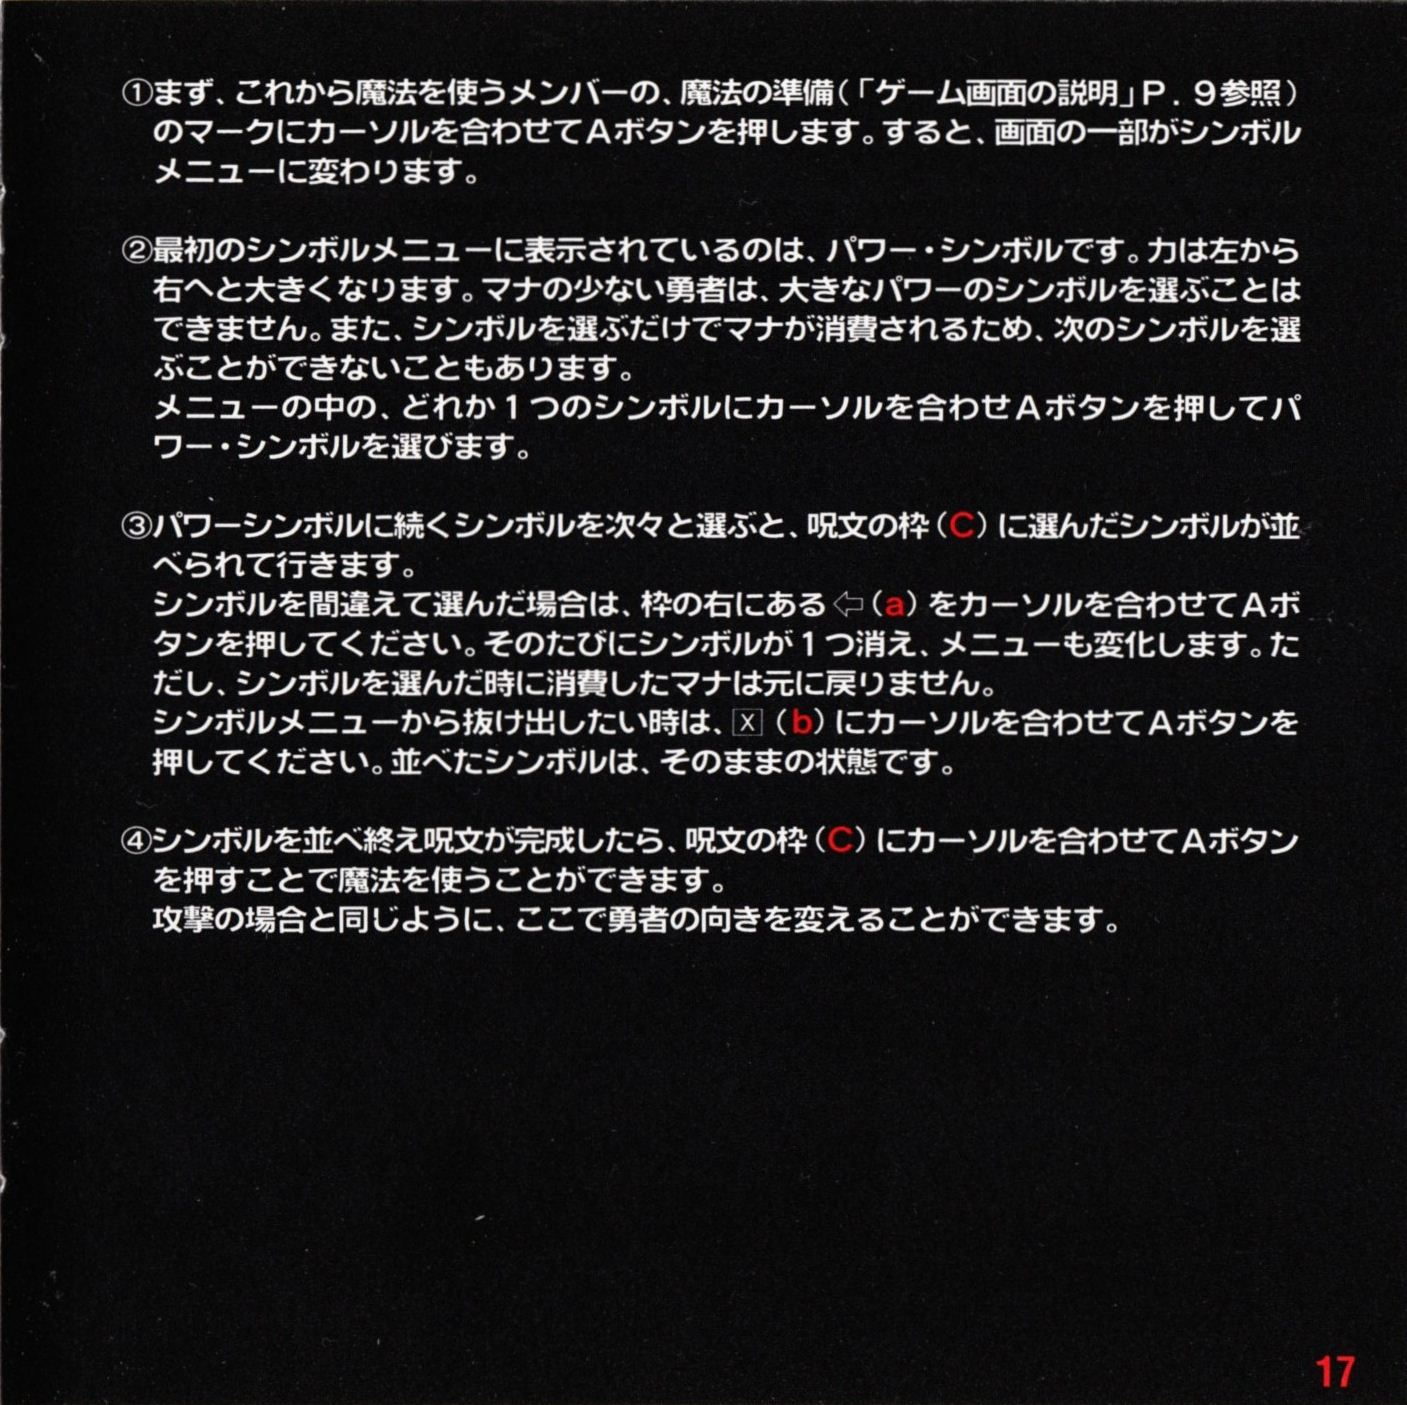 Game - Dungeon Master II - JP - Mega CD - Booklet - Page 019 - Scan